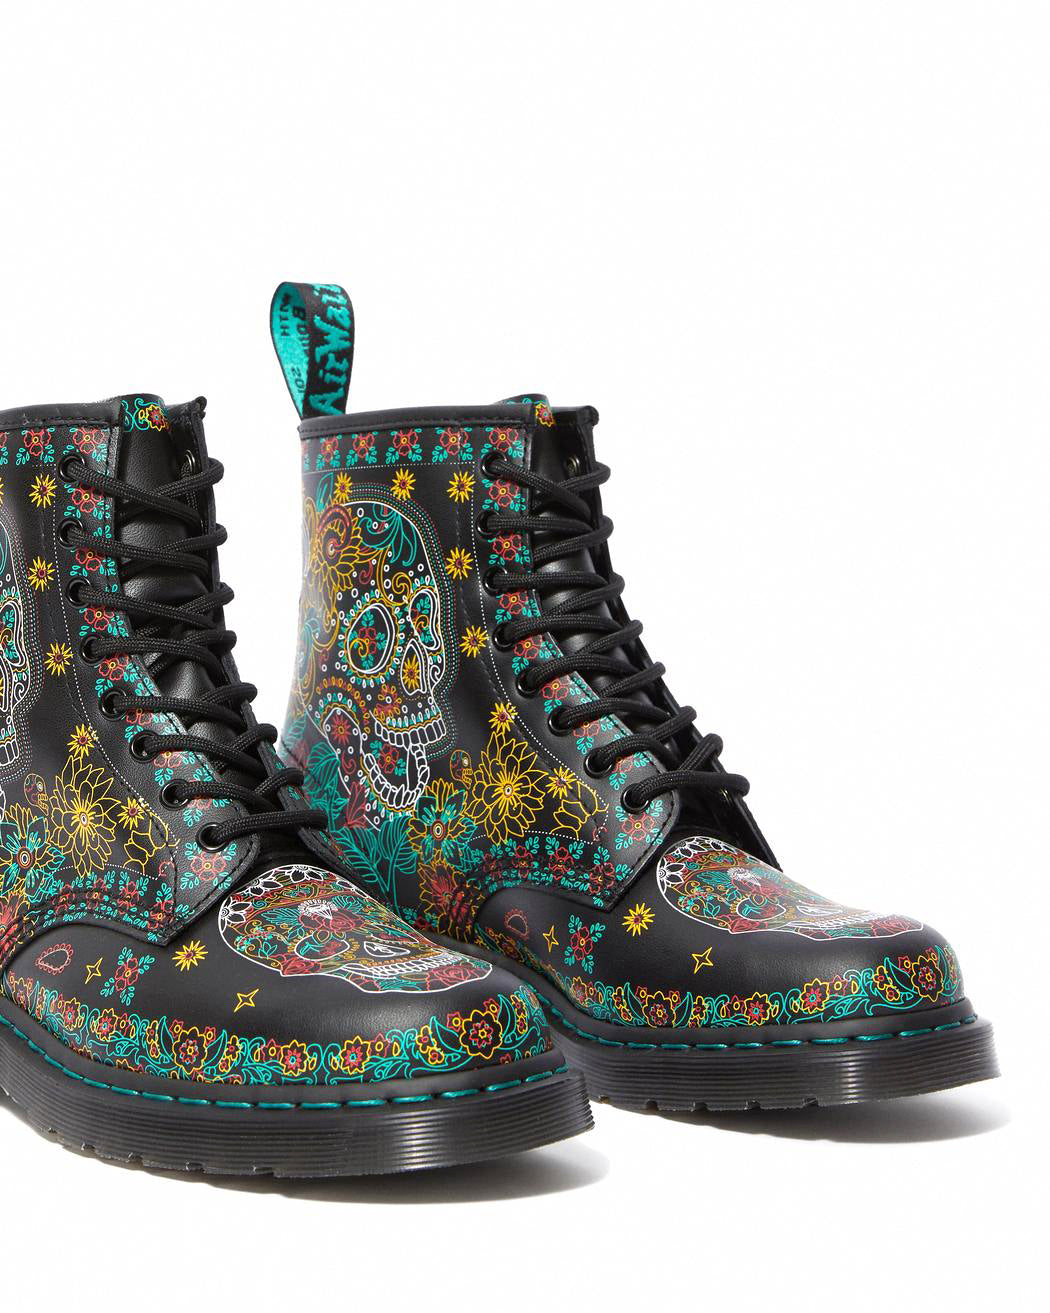 DR.MARTENS-1460 W SKULL-MULTI DAY OF THE DEAD BACKHAND